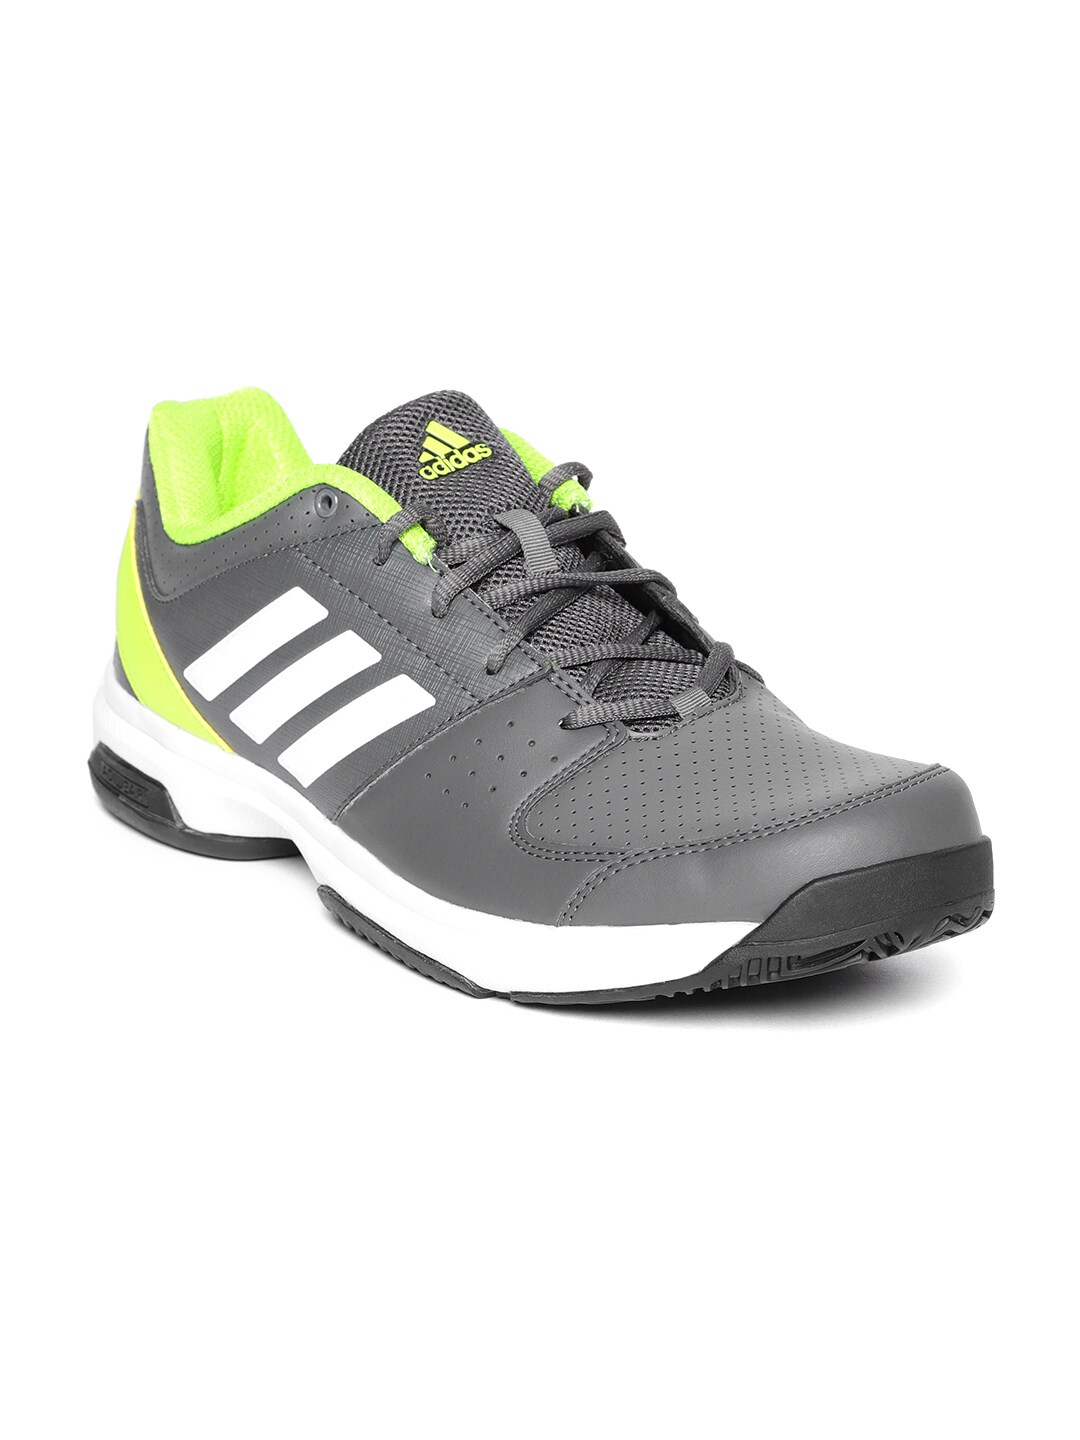 08eba67ca50b Adidas Vibe - Buy Adidas Vibe online in India